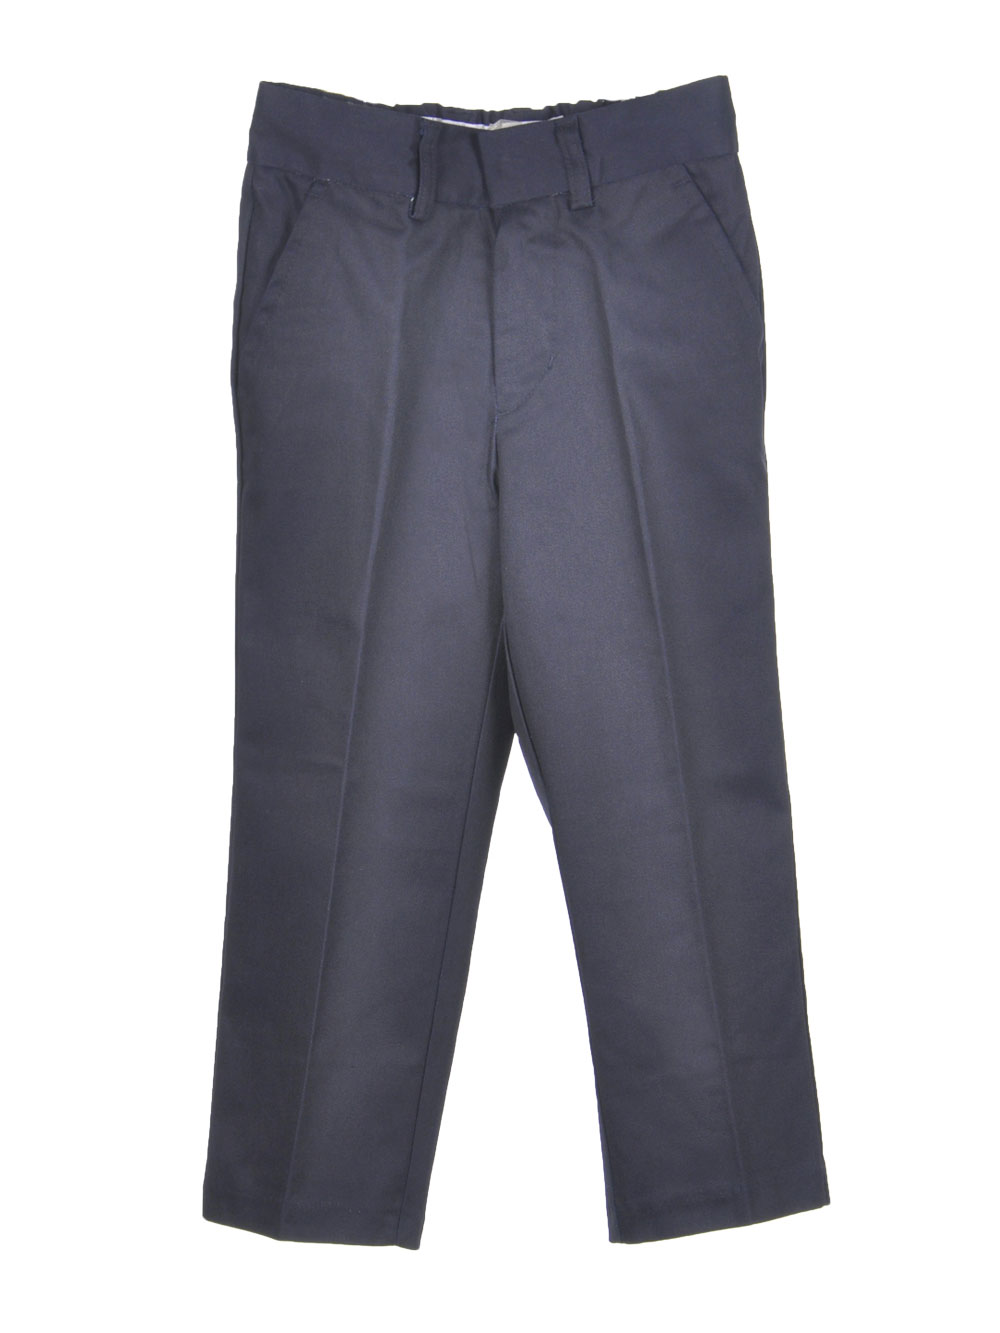 Image of Preferred School Uniforms Little Boys Double Knee Flat Front Pants Sizes 4  7  midnight navy 4